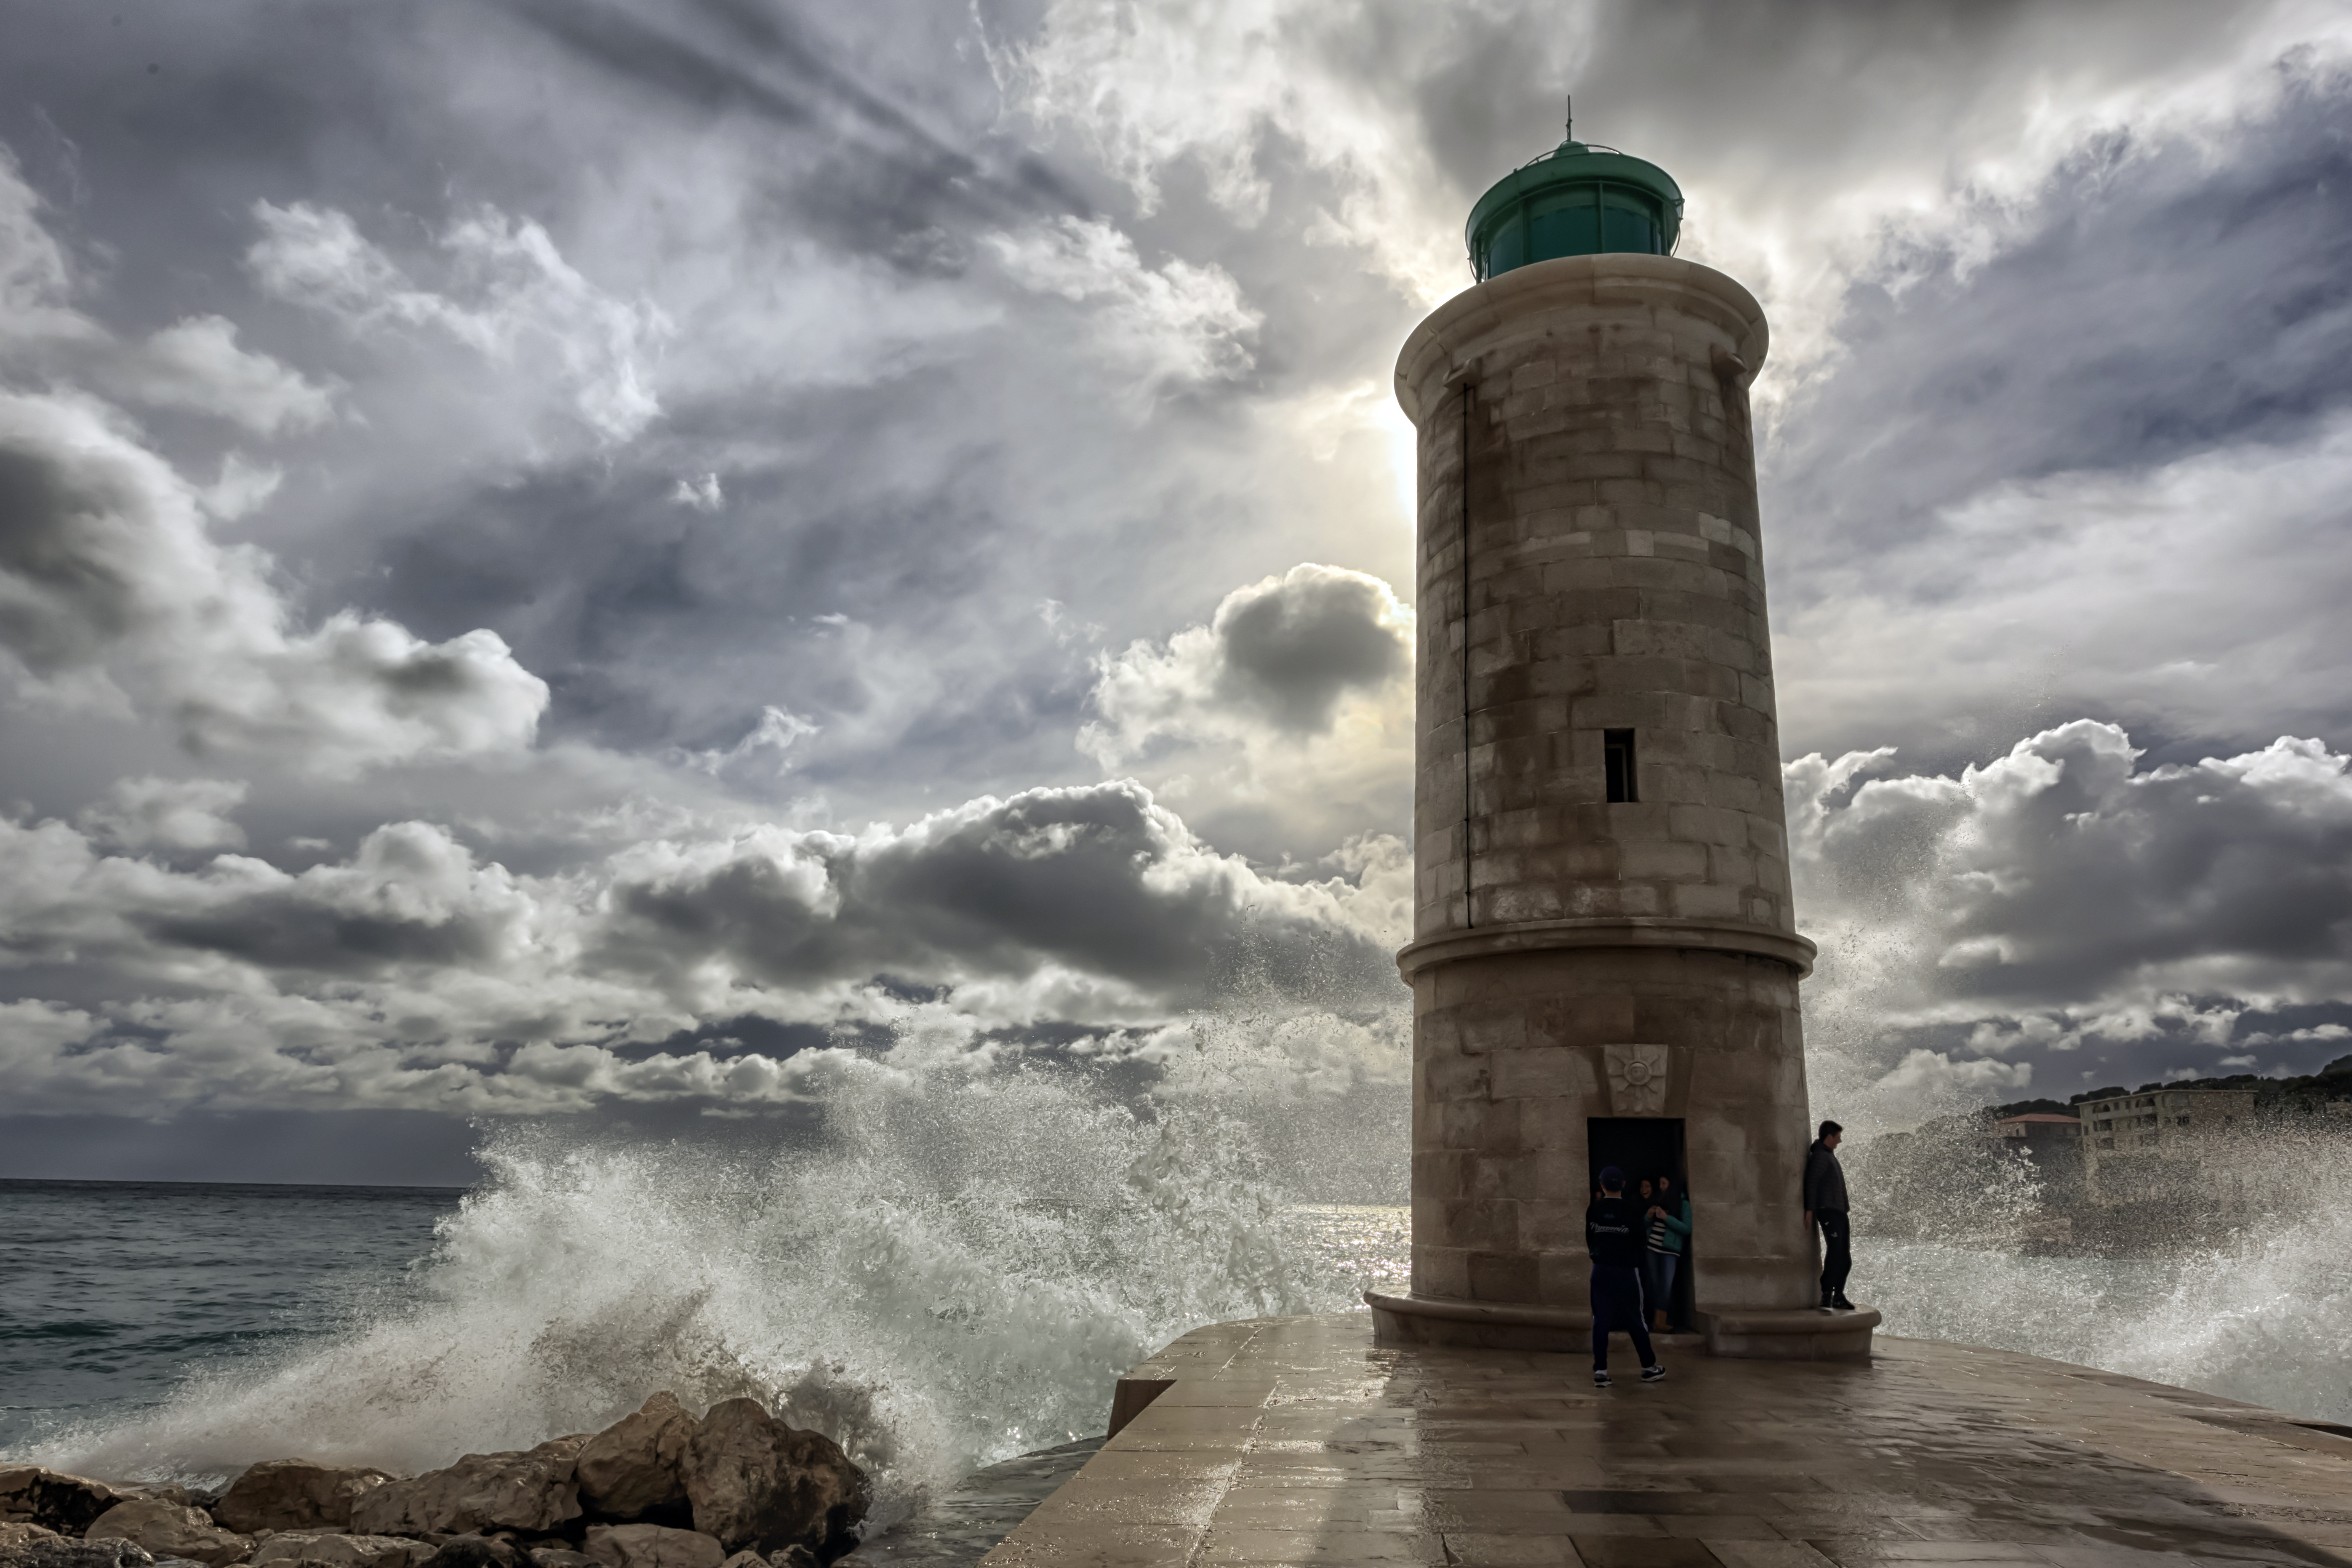 ... Wenphotos . Majestic Lighthouse under the Clouds at Marseille, France